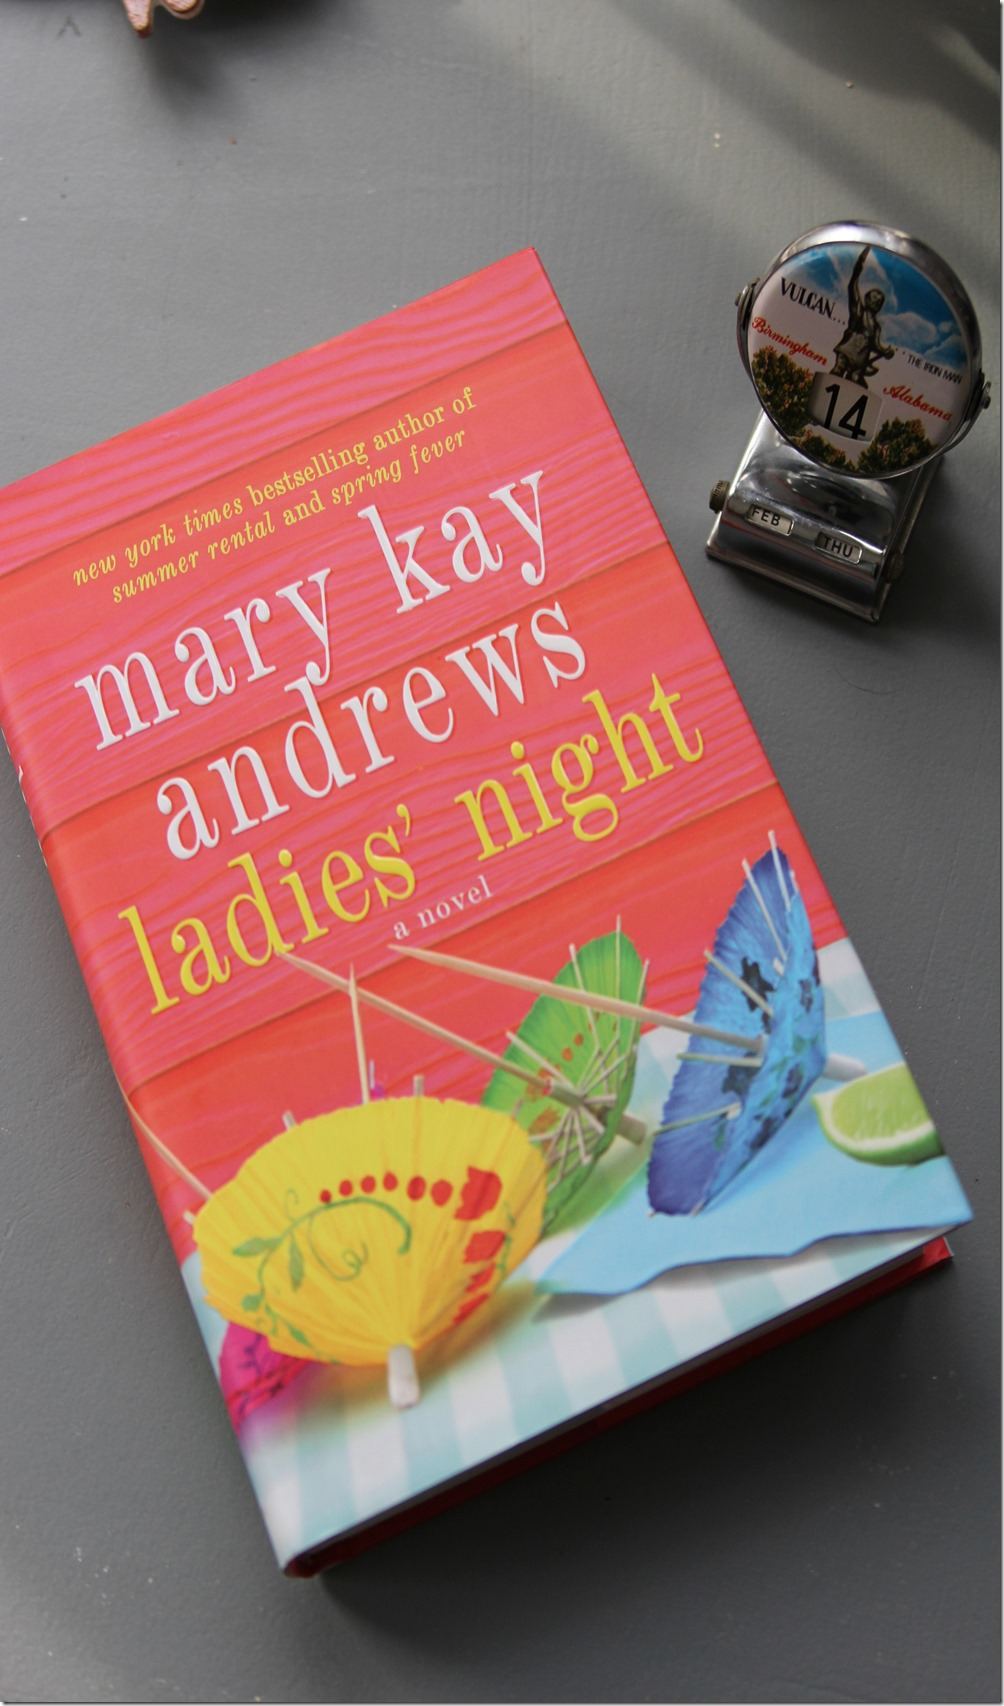 Our vacation to Tybee Island, Georgia was the perfect location for a long weekend getaway. I had enough time to relax and enjoy Ladies Night by Mary Kay Andrews.